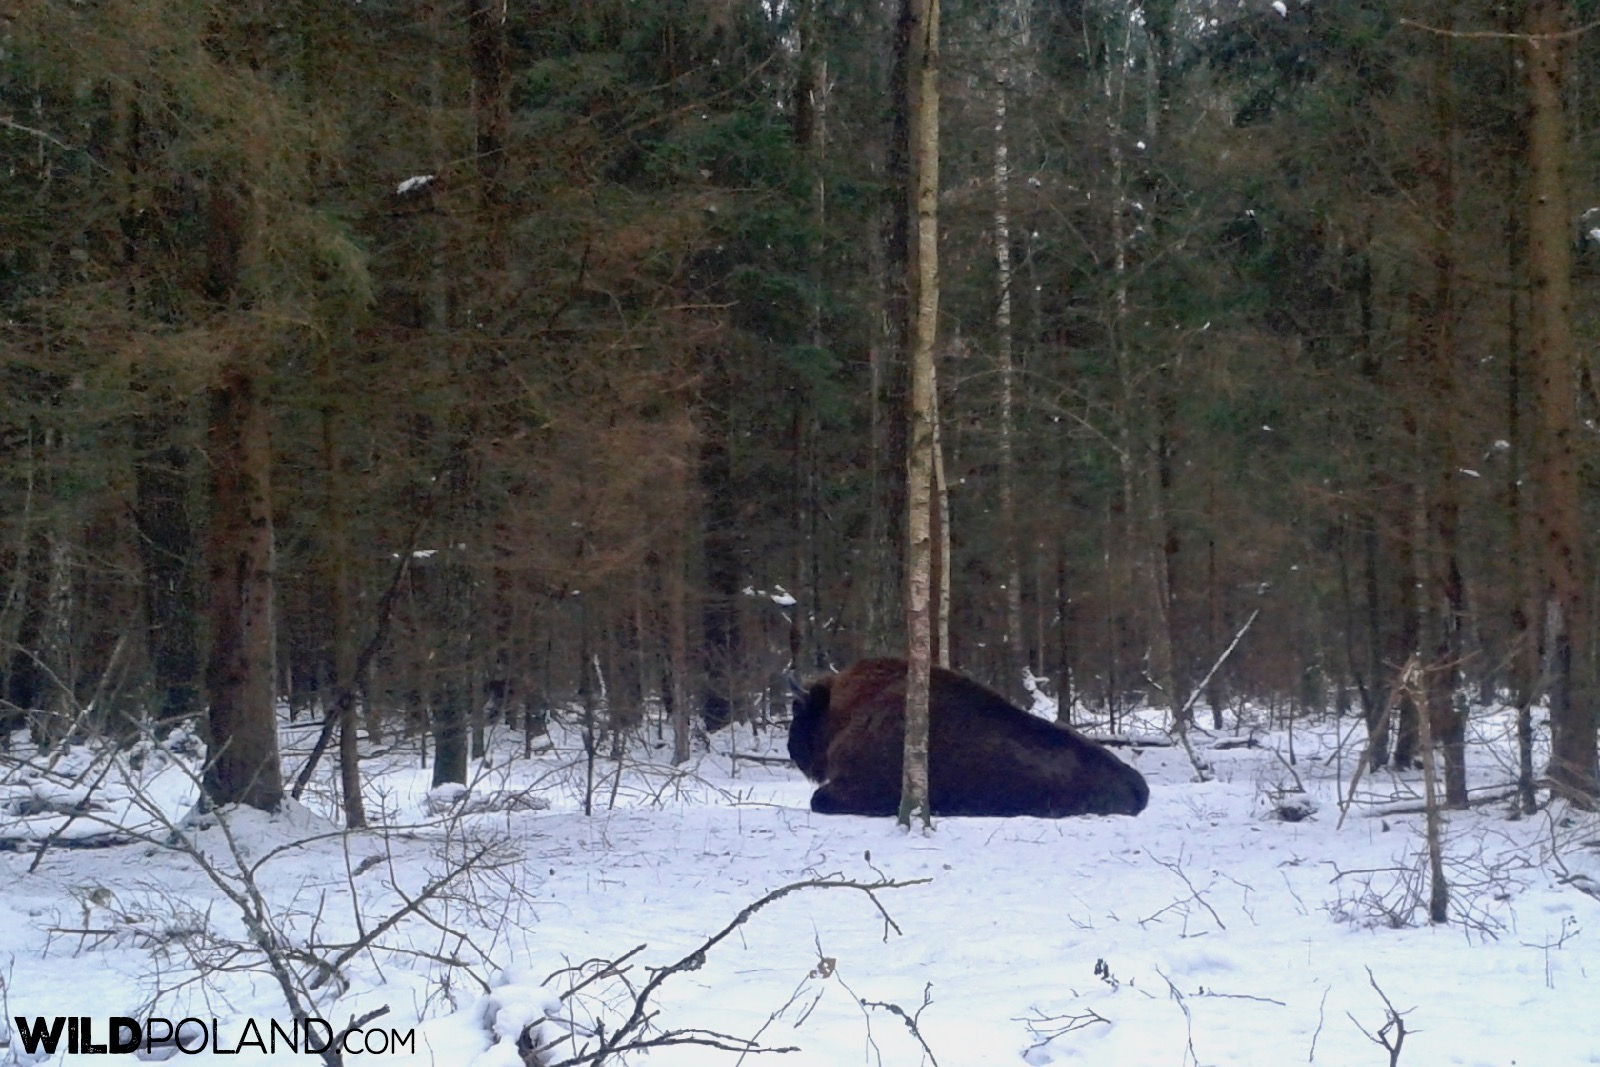 European Bison in the Białowieża Forest, photo by Piotr Dębowski